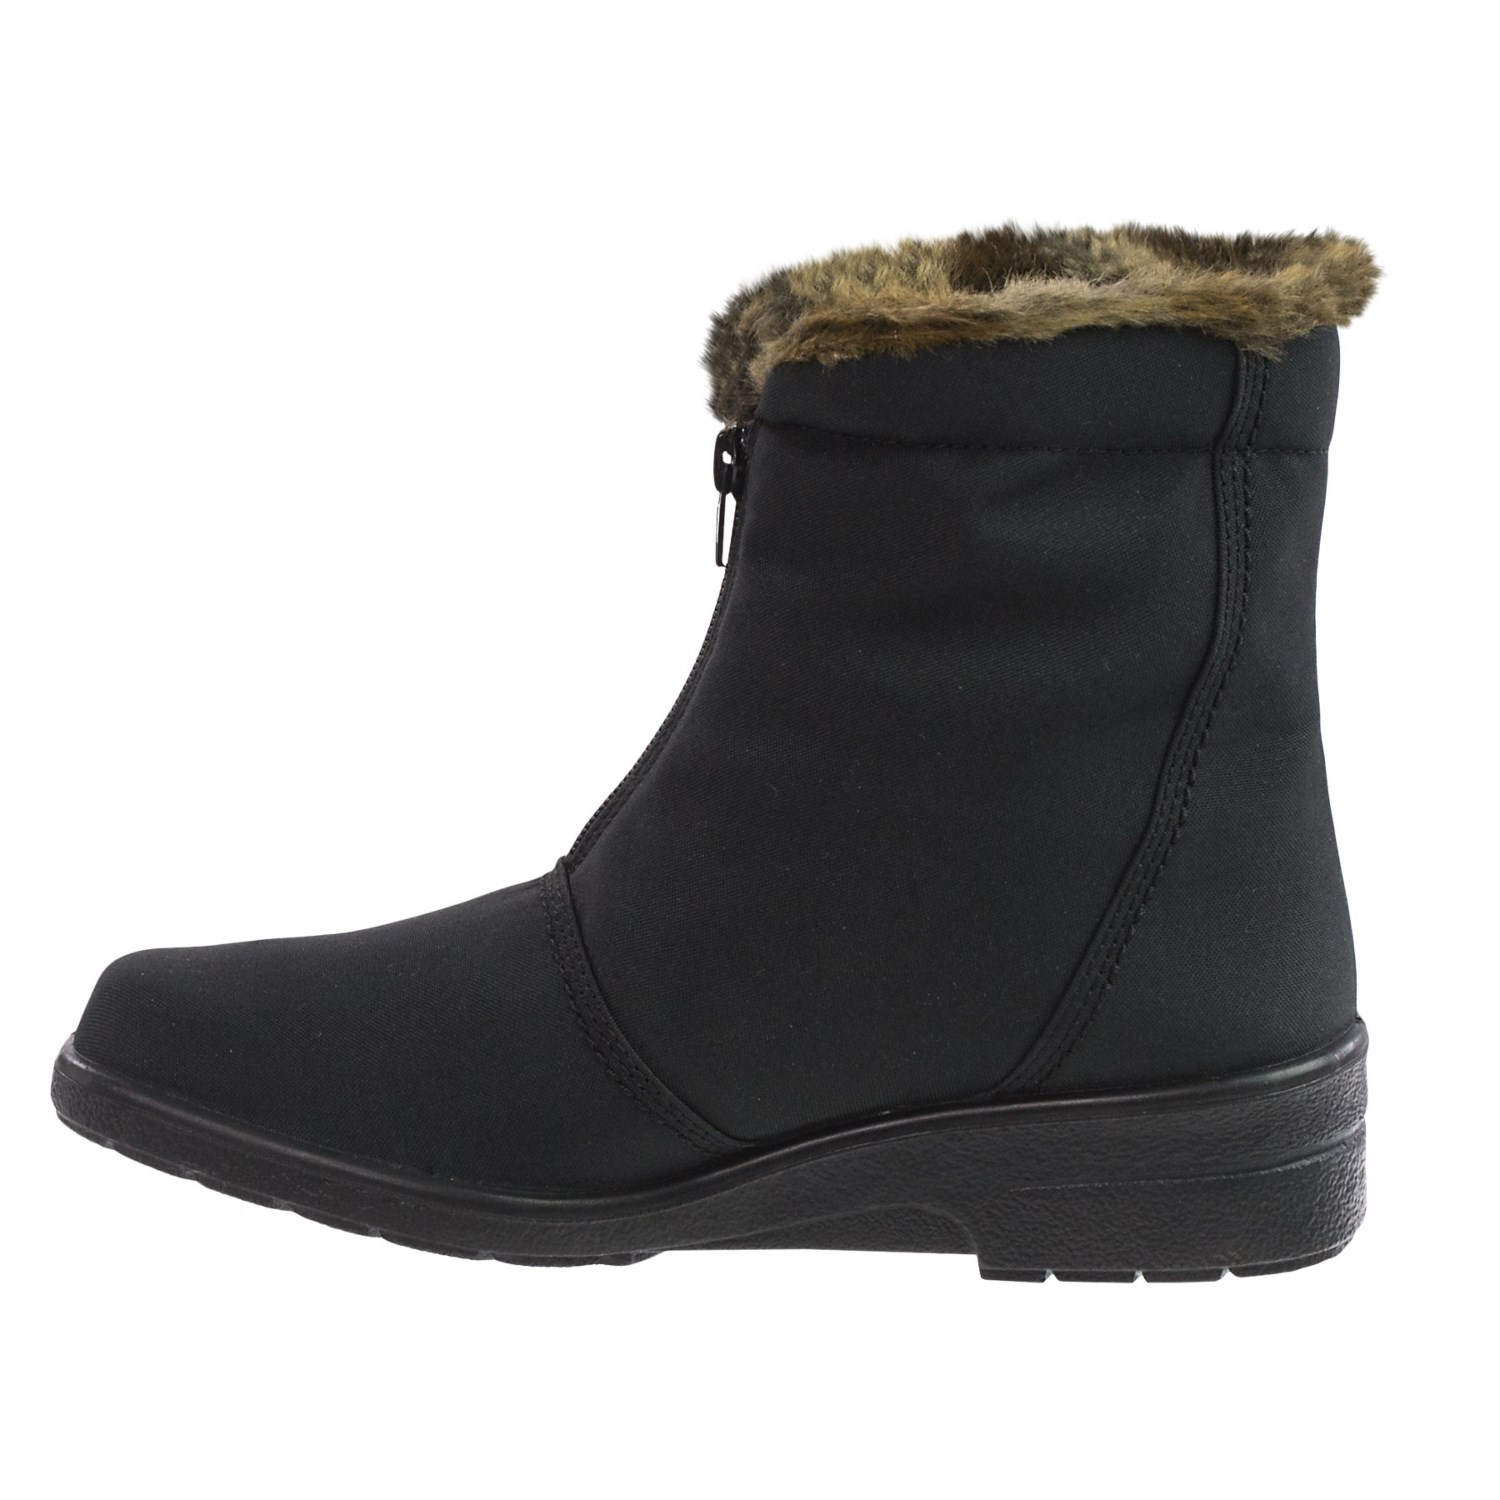 Jenny By Ara Boots. jenny by ara mccall snow boots for women